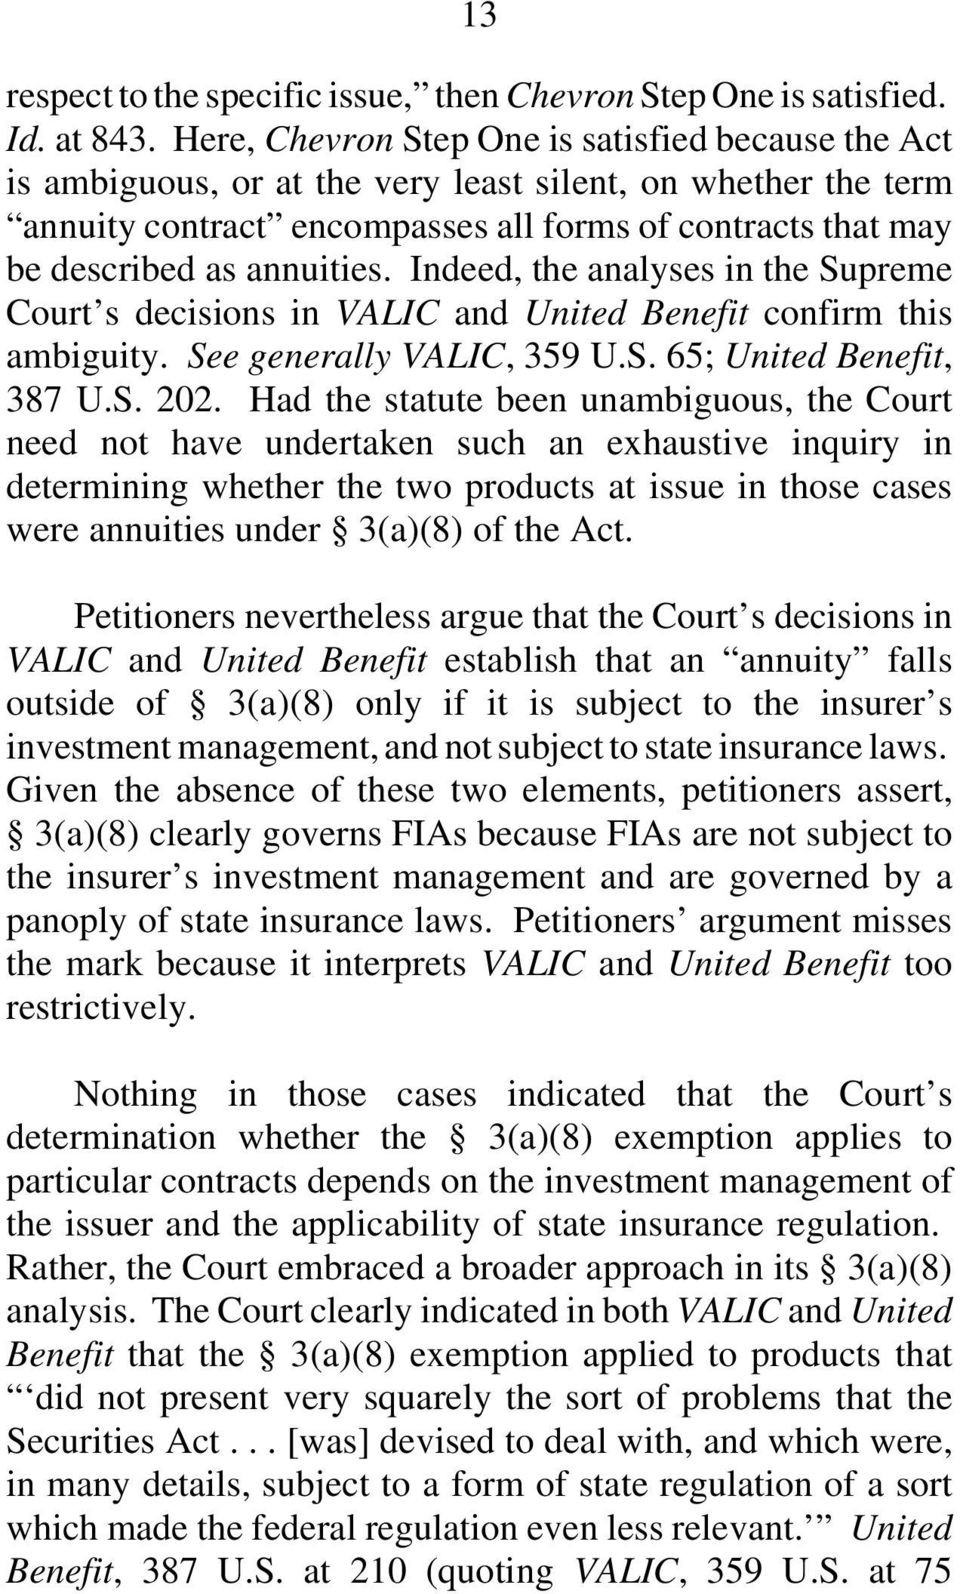 annuities. Indeed, the analyses in the Supreme Court s decisions in VALIC and United Benefit confirm this ambiguity. See generally VALIC, 359 U.S. 65; United Benefit, 387 U.S. 202.